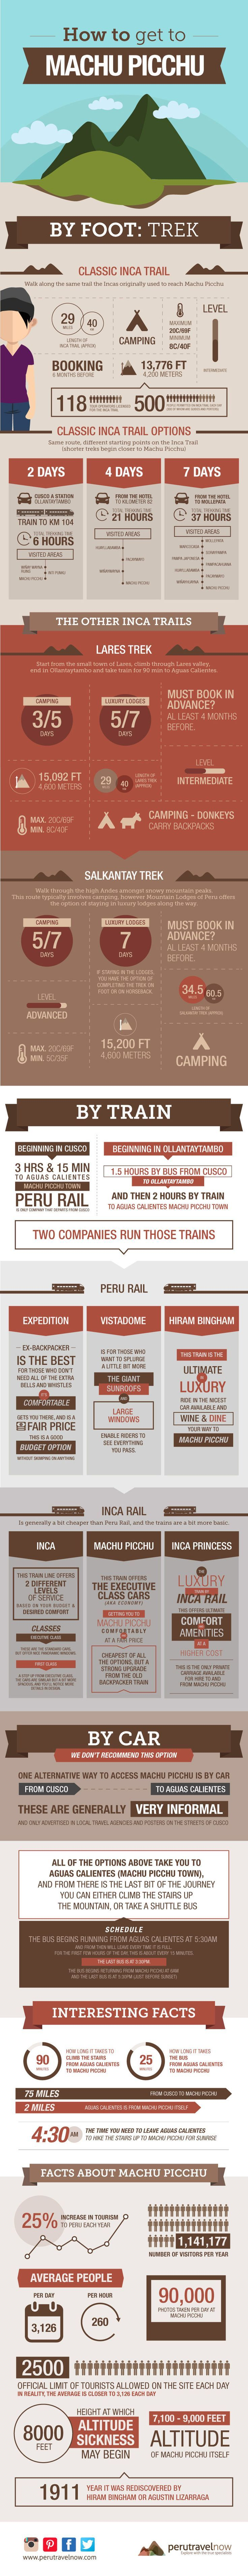 Travel Peru l How to Get to Machu Picchu (Infographic) l @perutravelnow